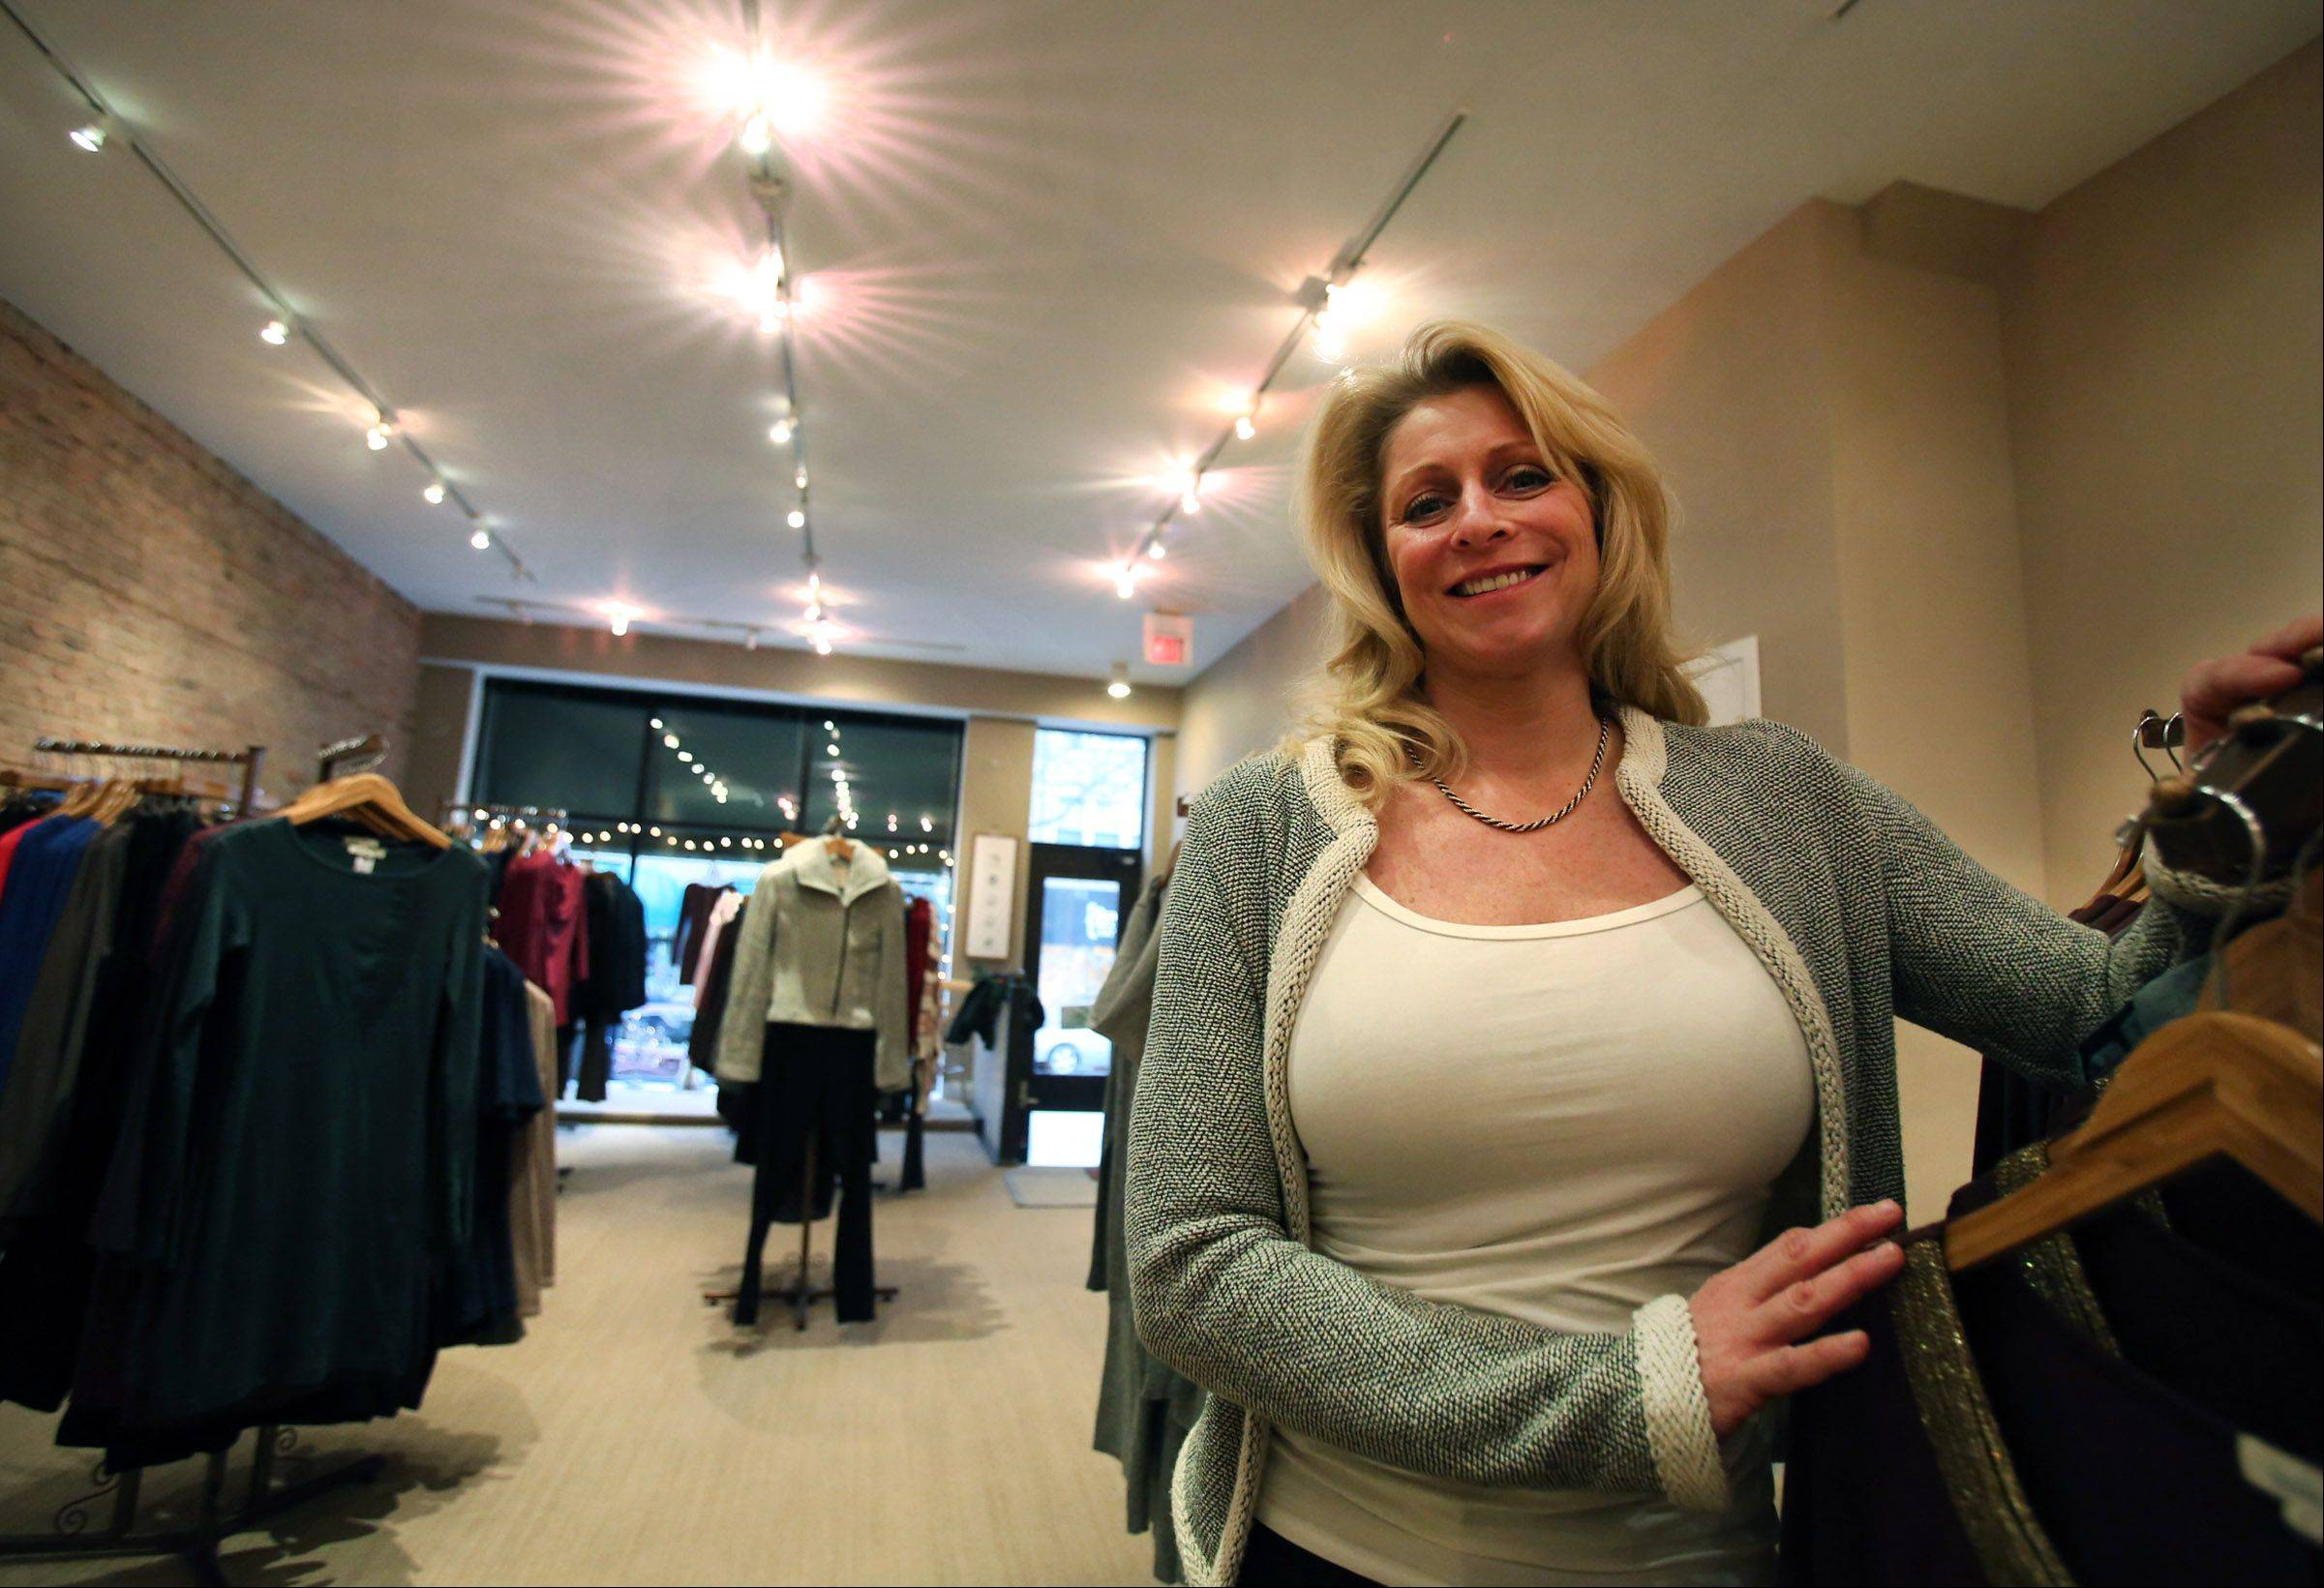 Jennifer Vanacora, owner of Eco Diva Clothing, at her store in Arlington Heights.